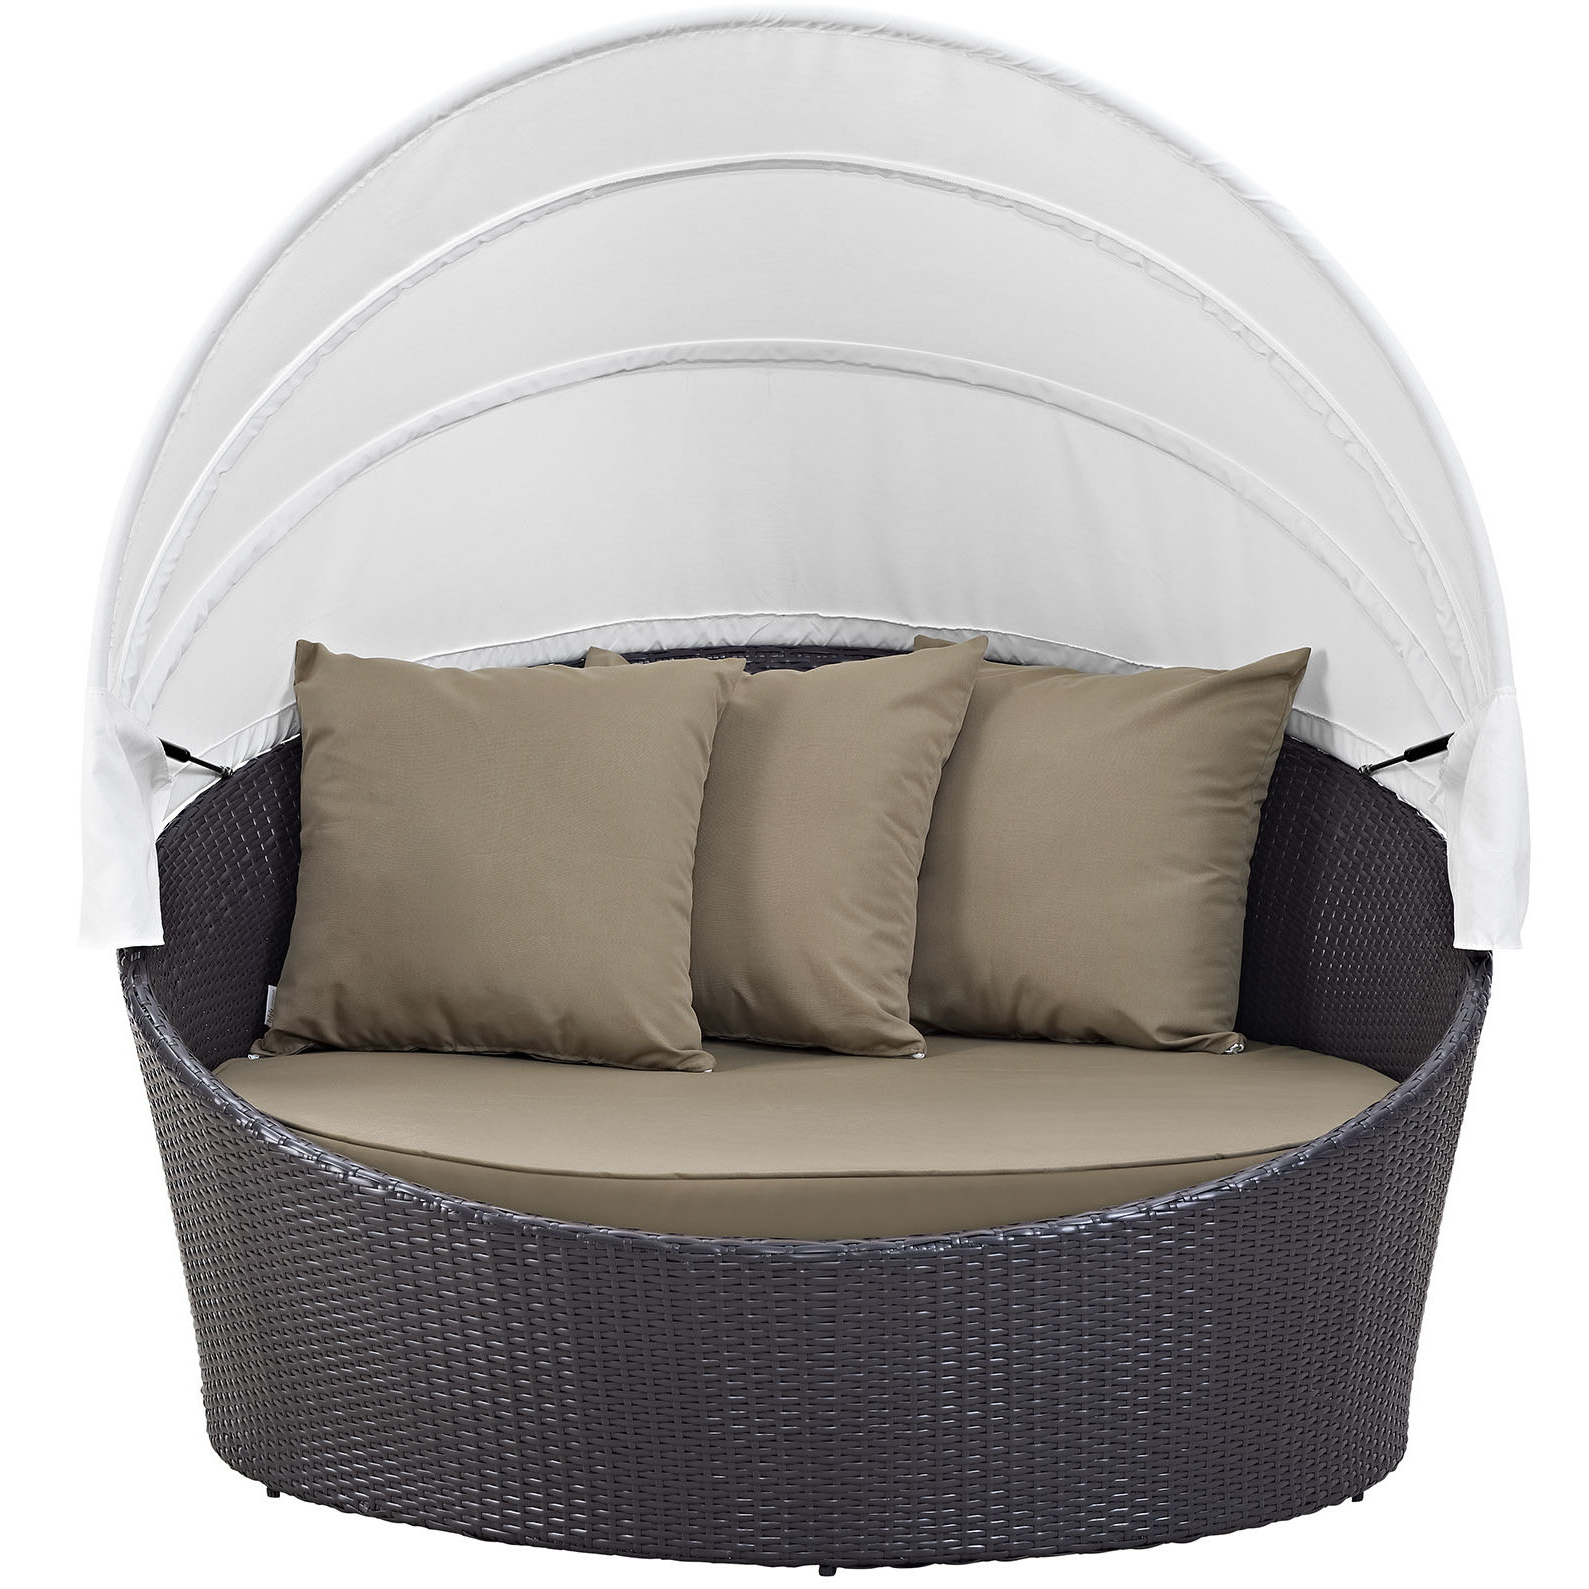 Preferred Hatley Patio Daybeds With Cushions With Brentwood Canopy Patio Daybed With Cushions (View 17 of 20)